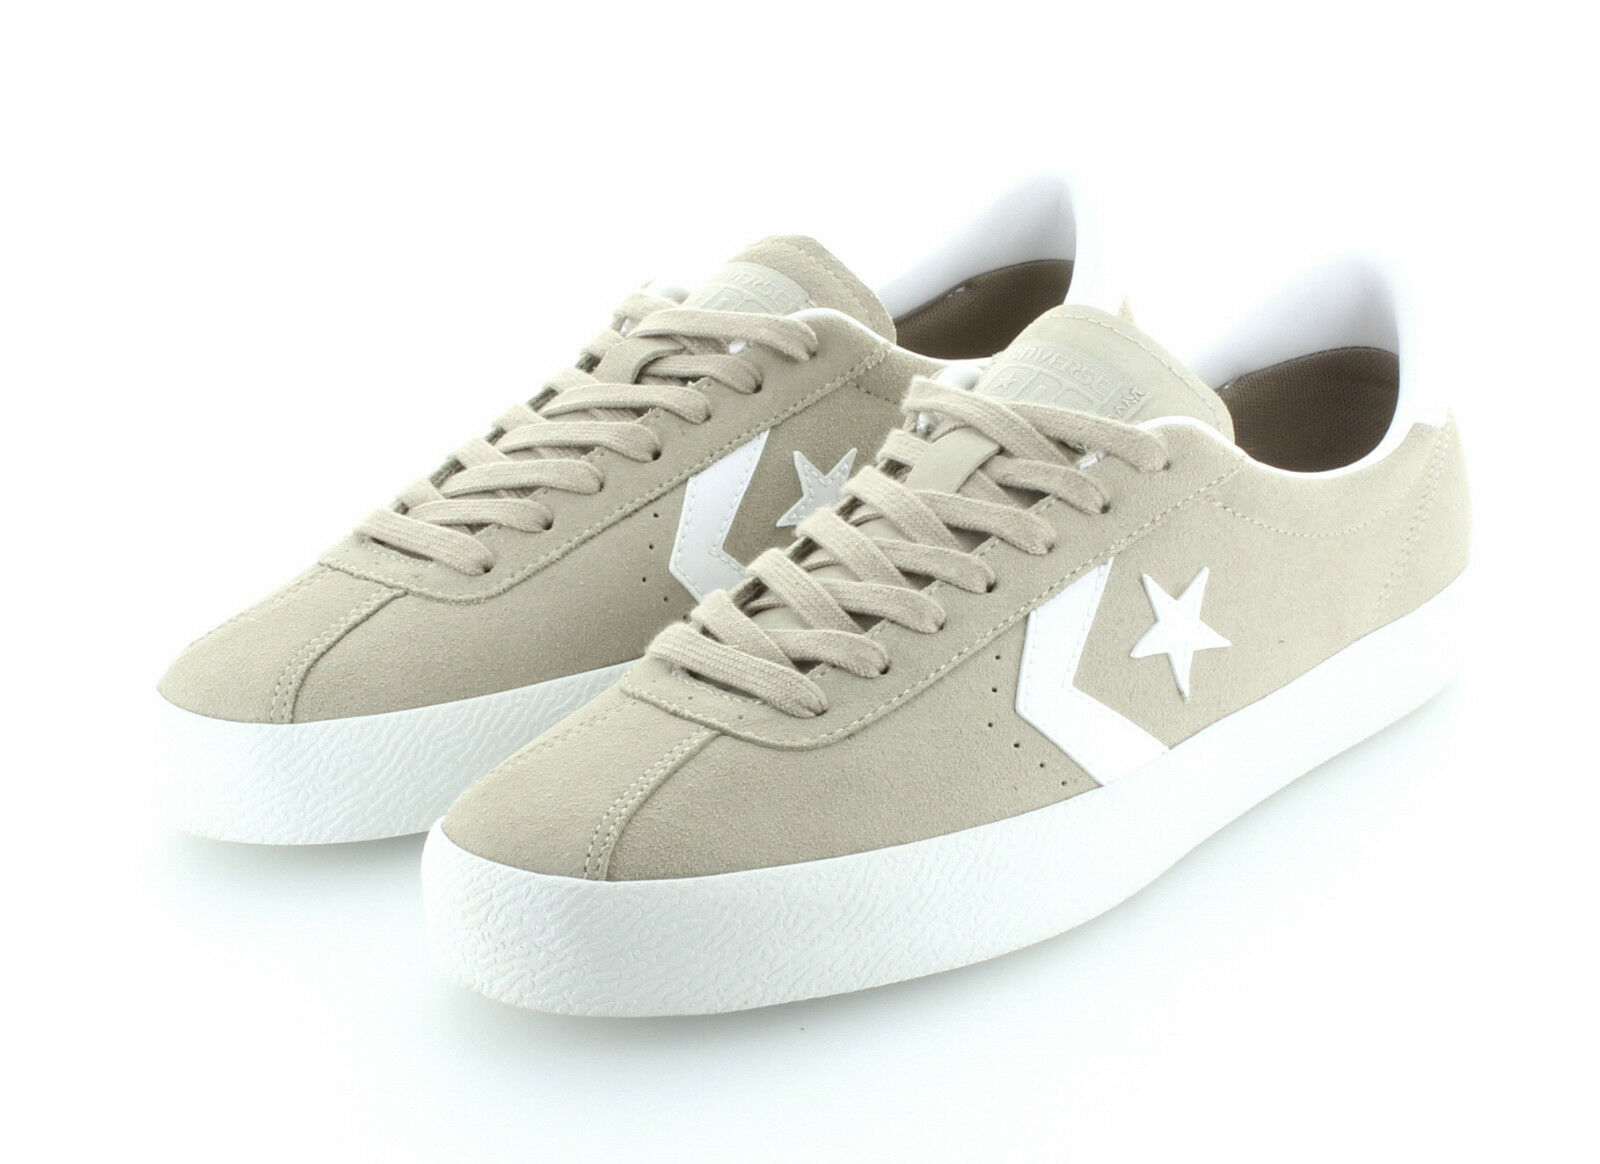 Converse Cons Breakpoint Ox Suede Rope White Gr. 42,5  / 43 US 9